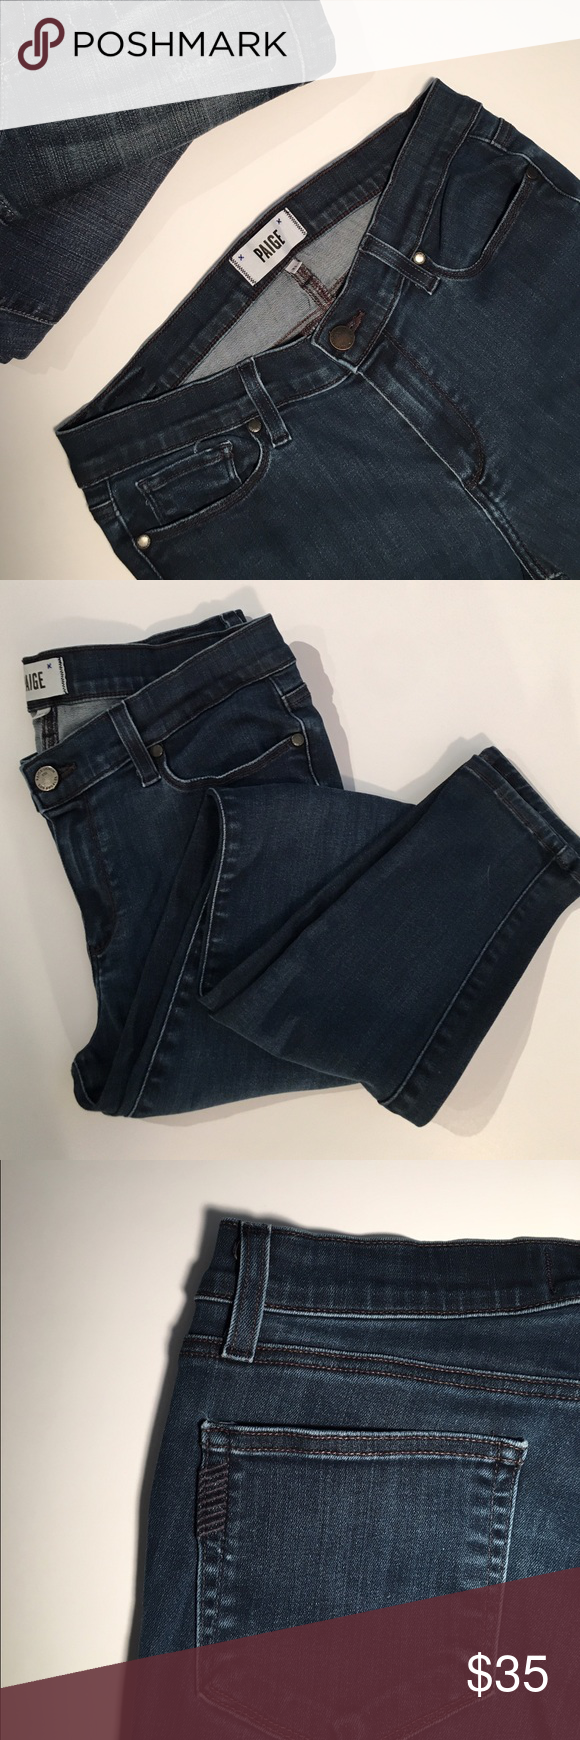 "Paige Verdugo Ultra Skinny Jeans ✔️Skinny Fit ✔️Cotton/Lyocell/Poly/Elastane Blend ✔️Super Lux Denim! ✔️29"" Inseam ✔️Excellent Condition Paige Jeans Jeans Skinny"